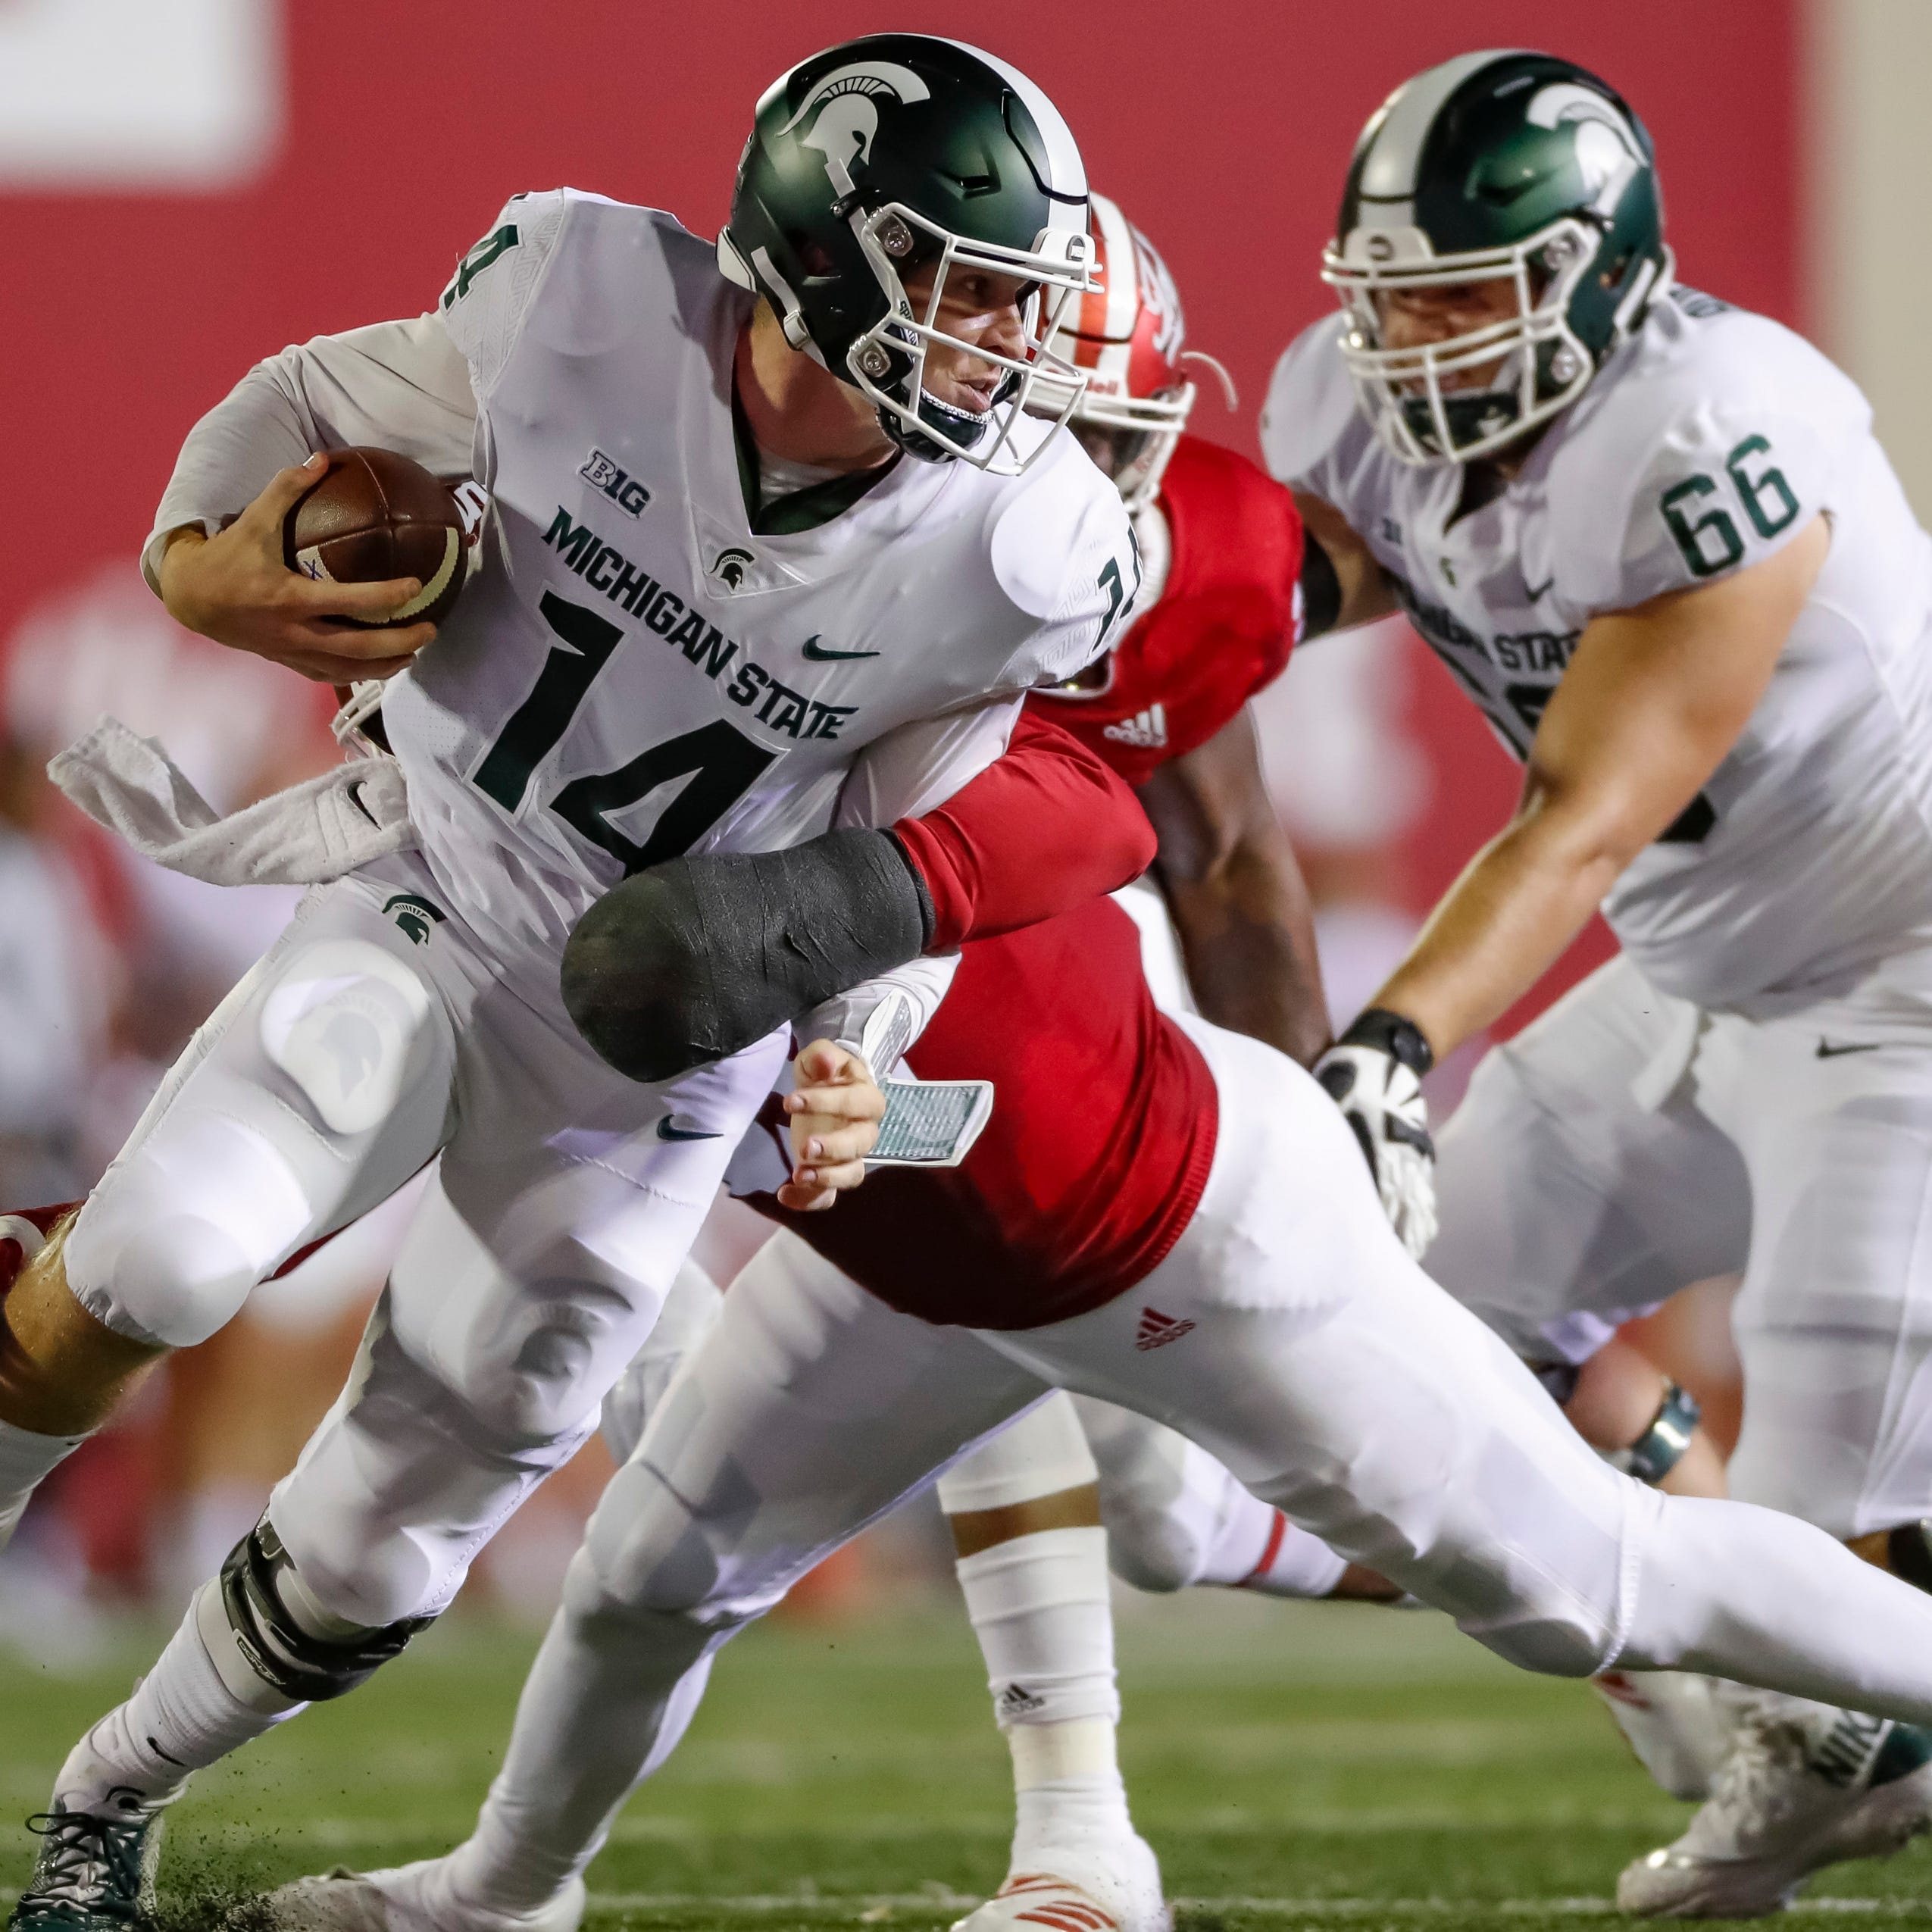 Michigan State football suffers more injuries along banged-up offensive line